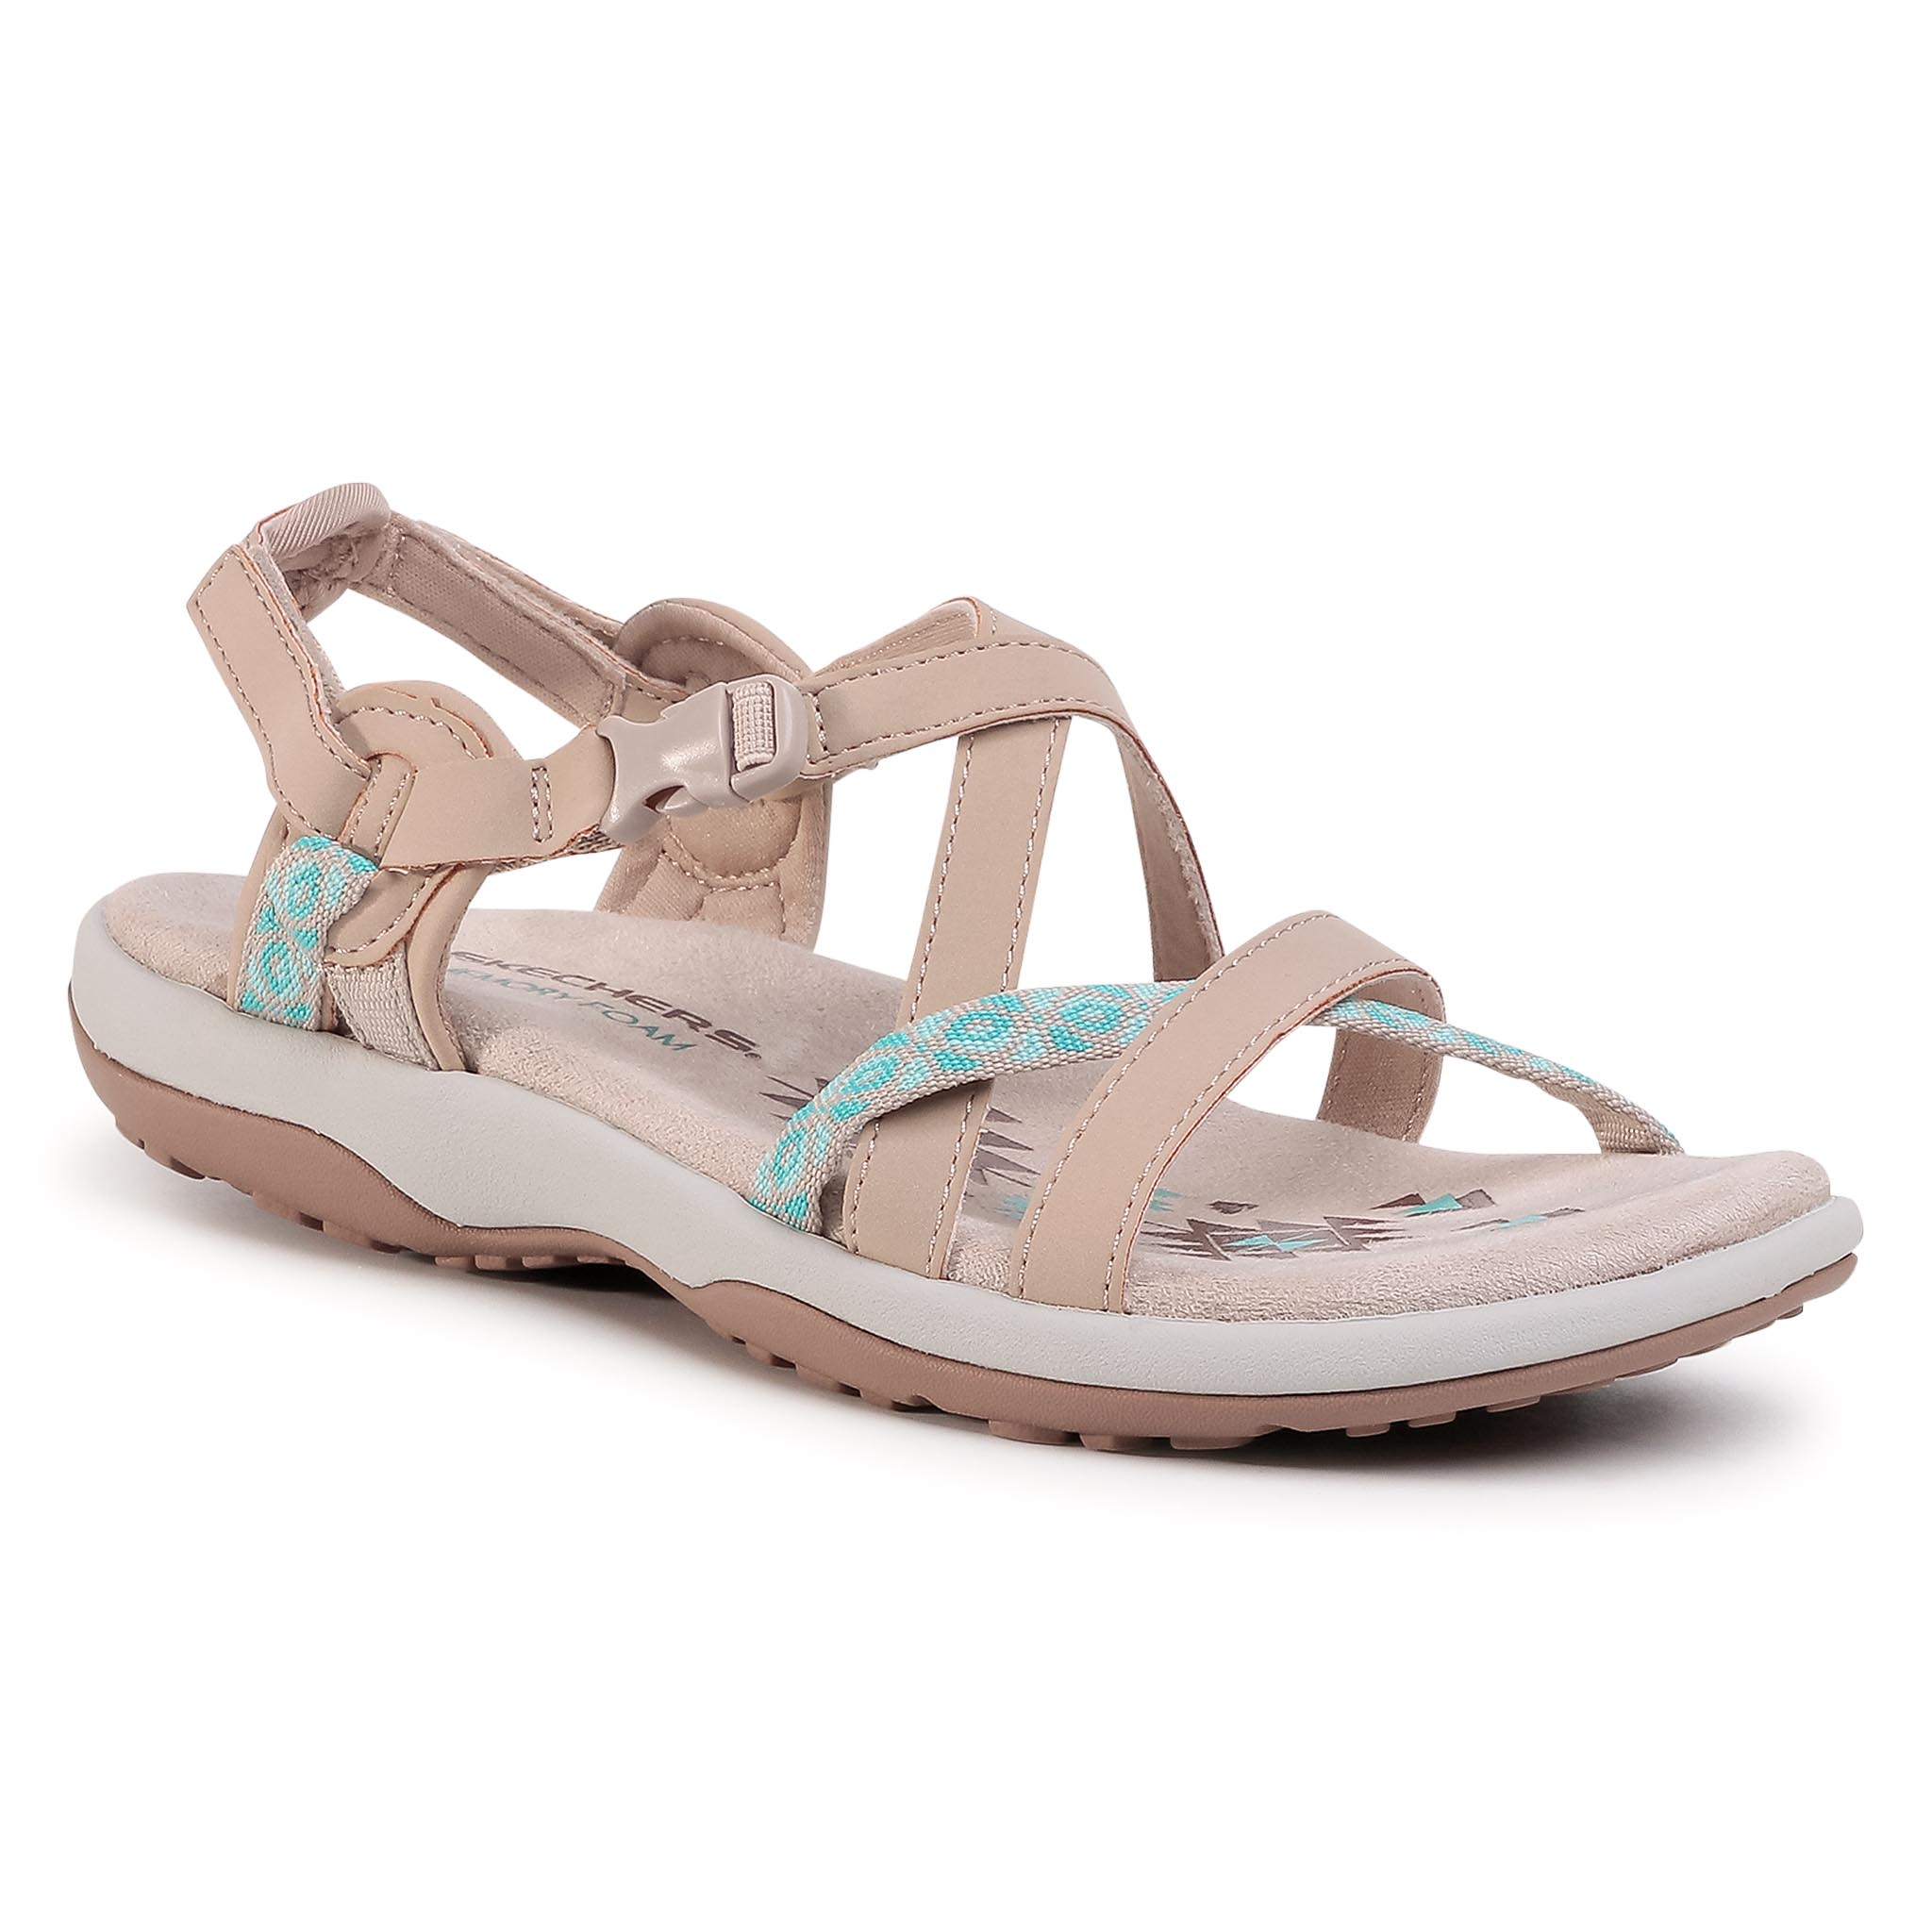 Sandale SKECHERS - Vacay 40955/TPE Taupe